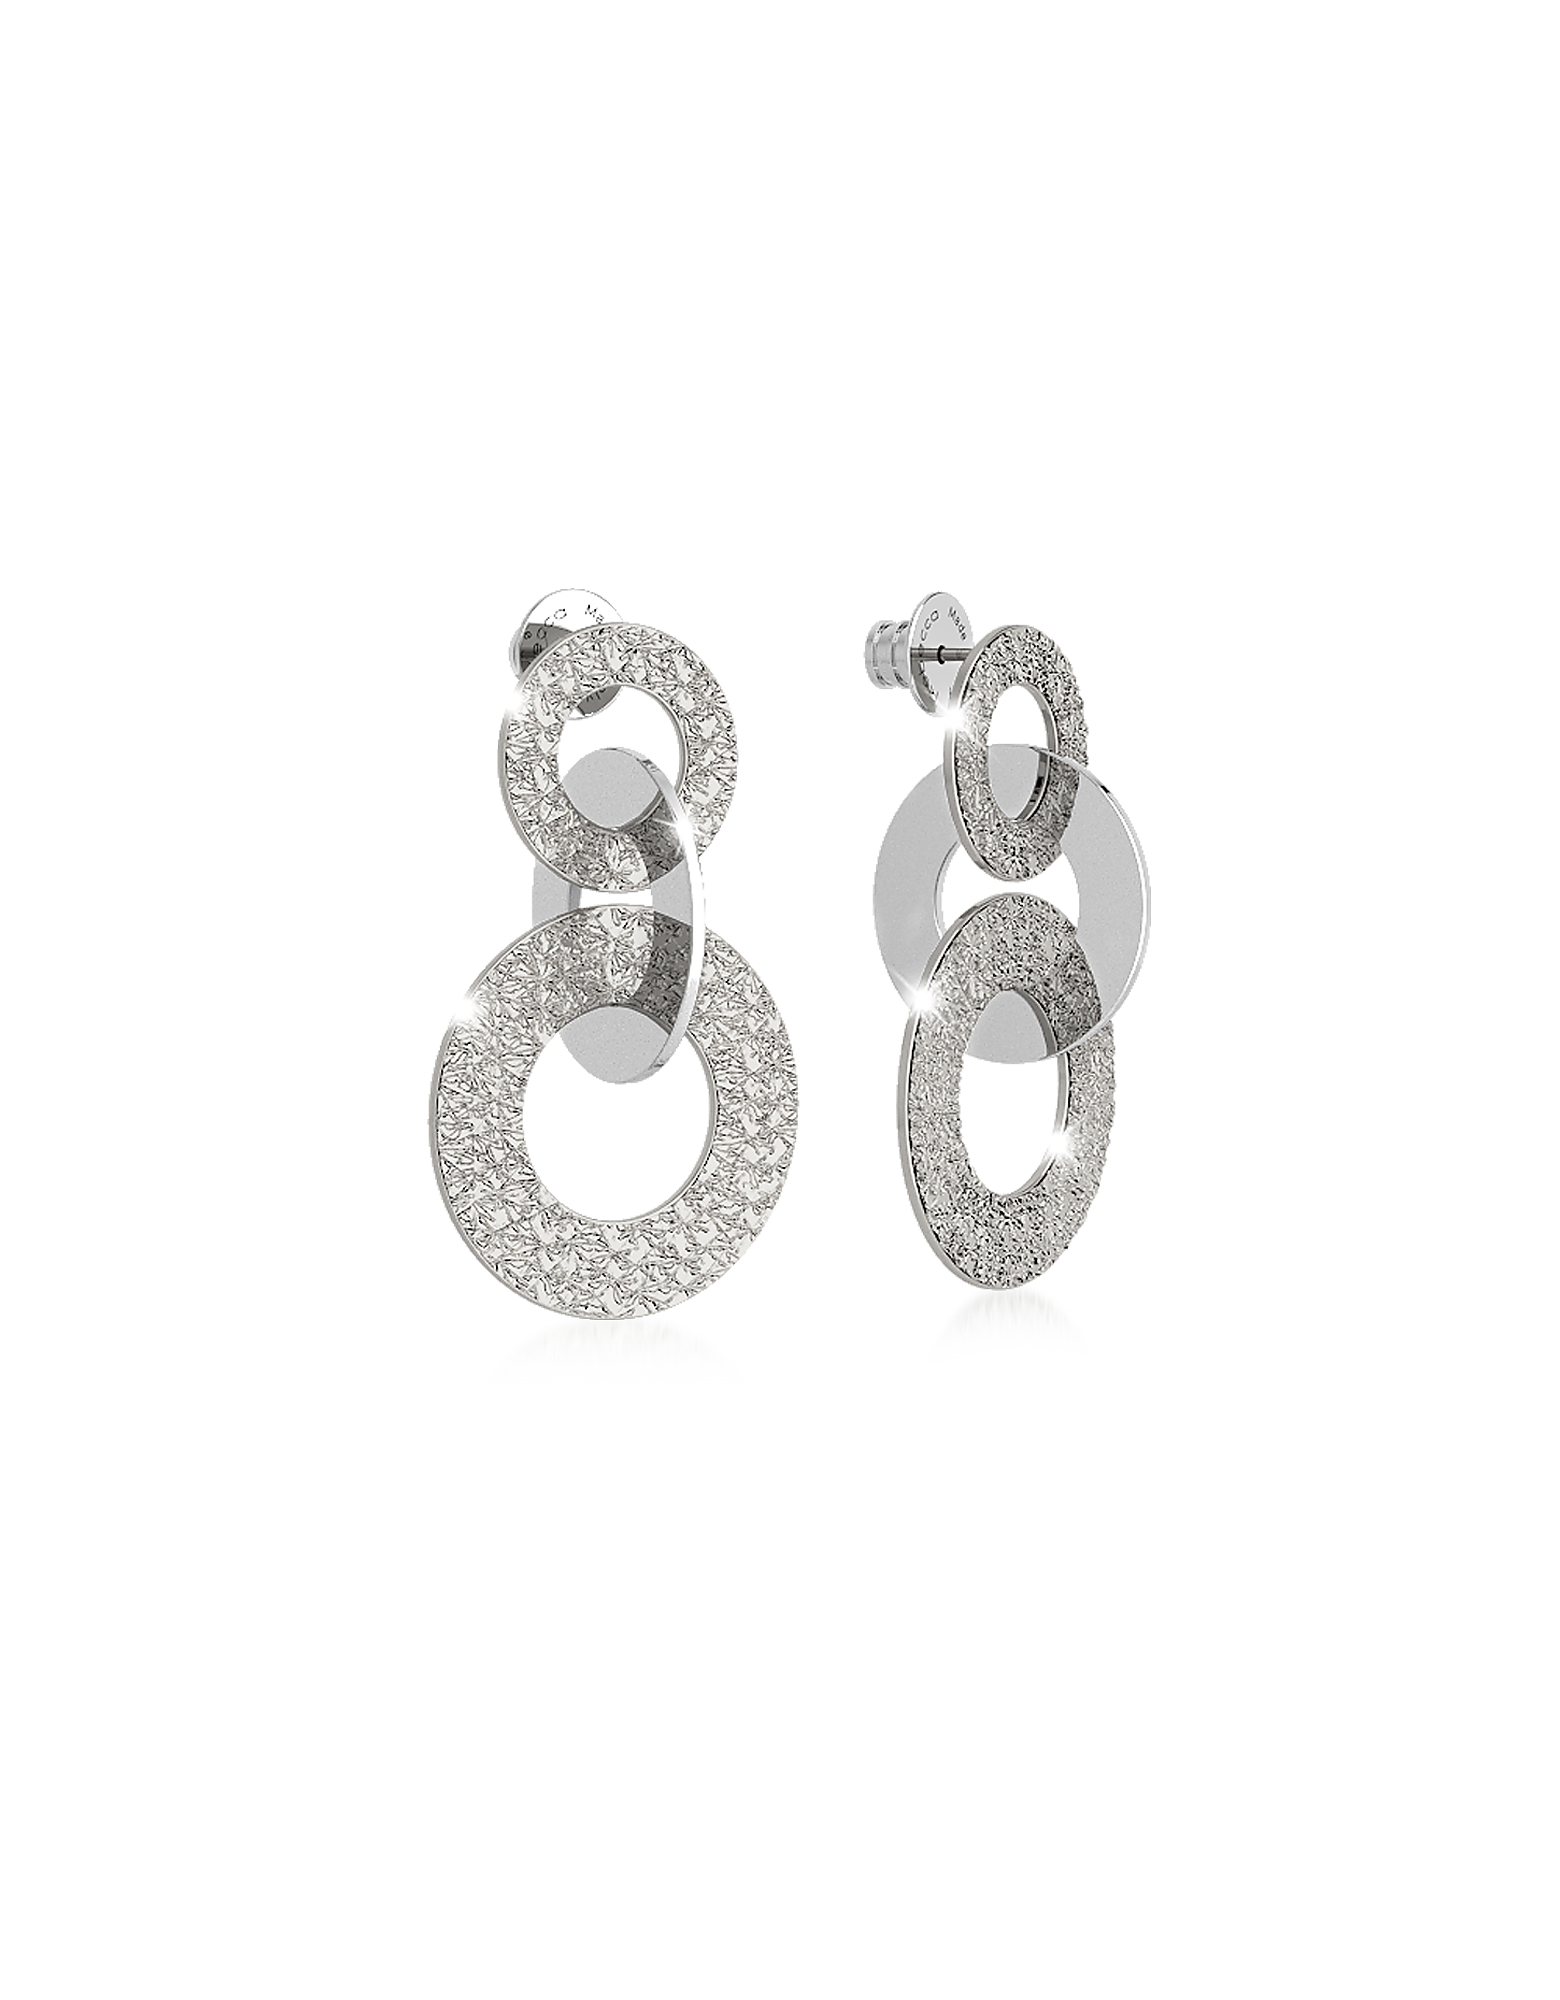 Rebecca Earrings, R-ZERO Rhodium Over Bronze Earrings